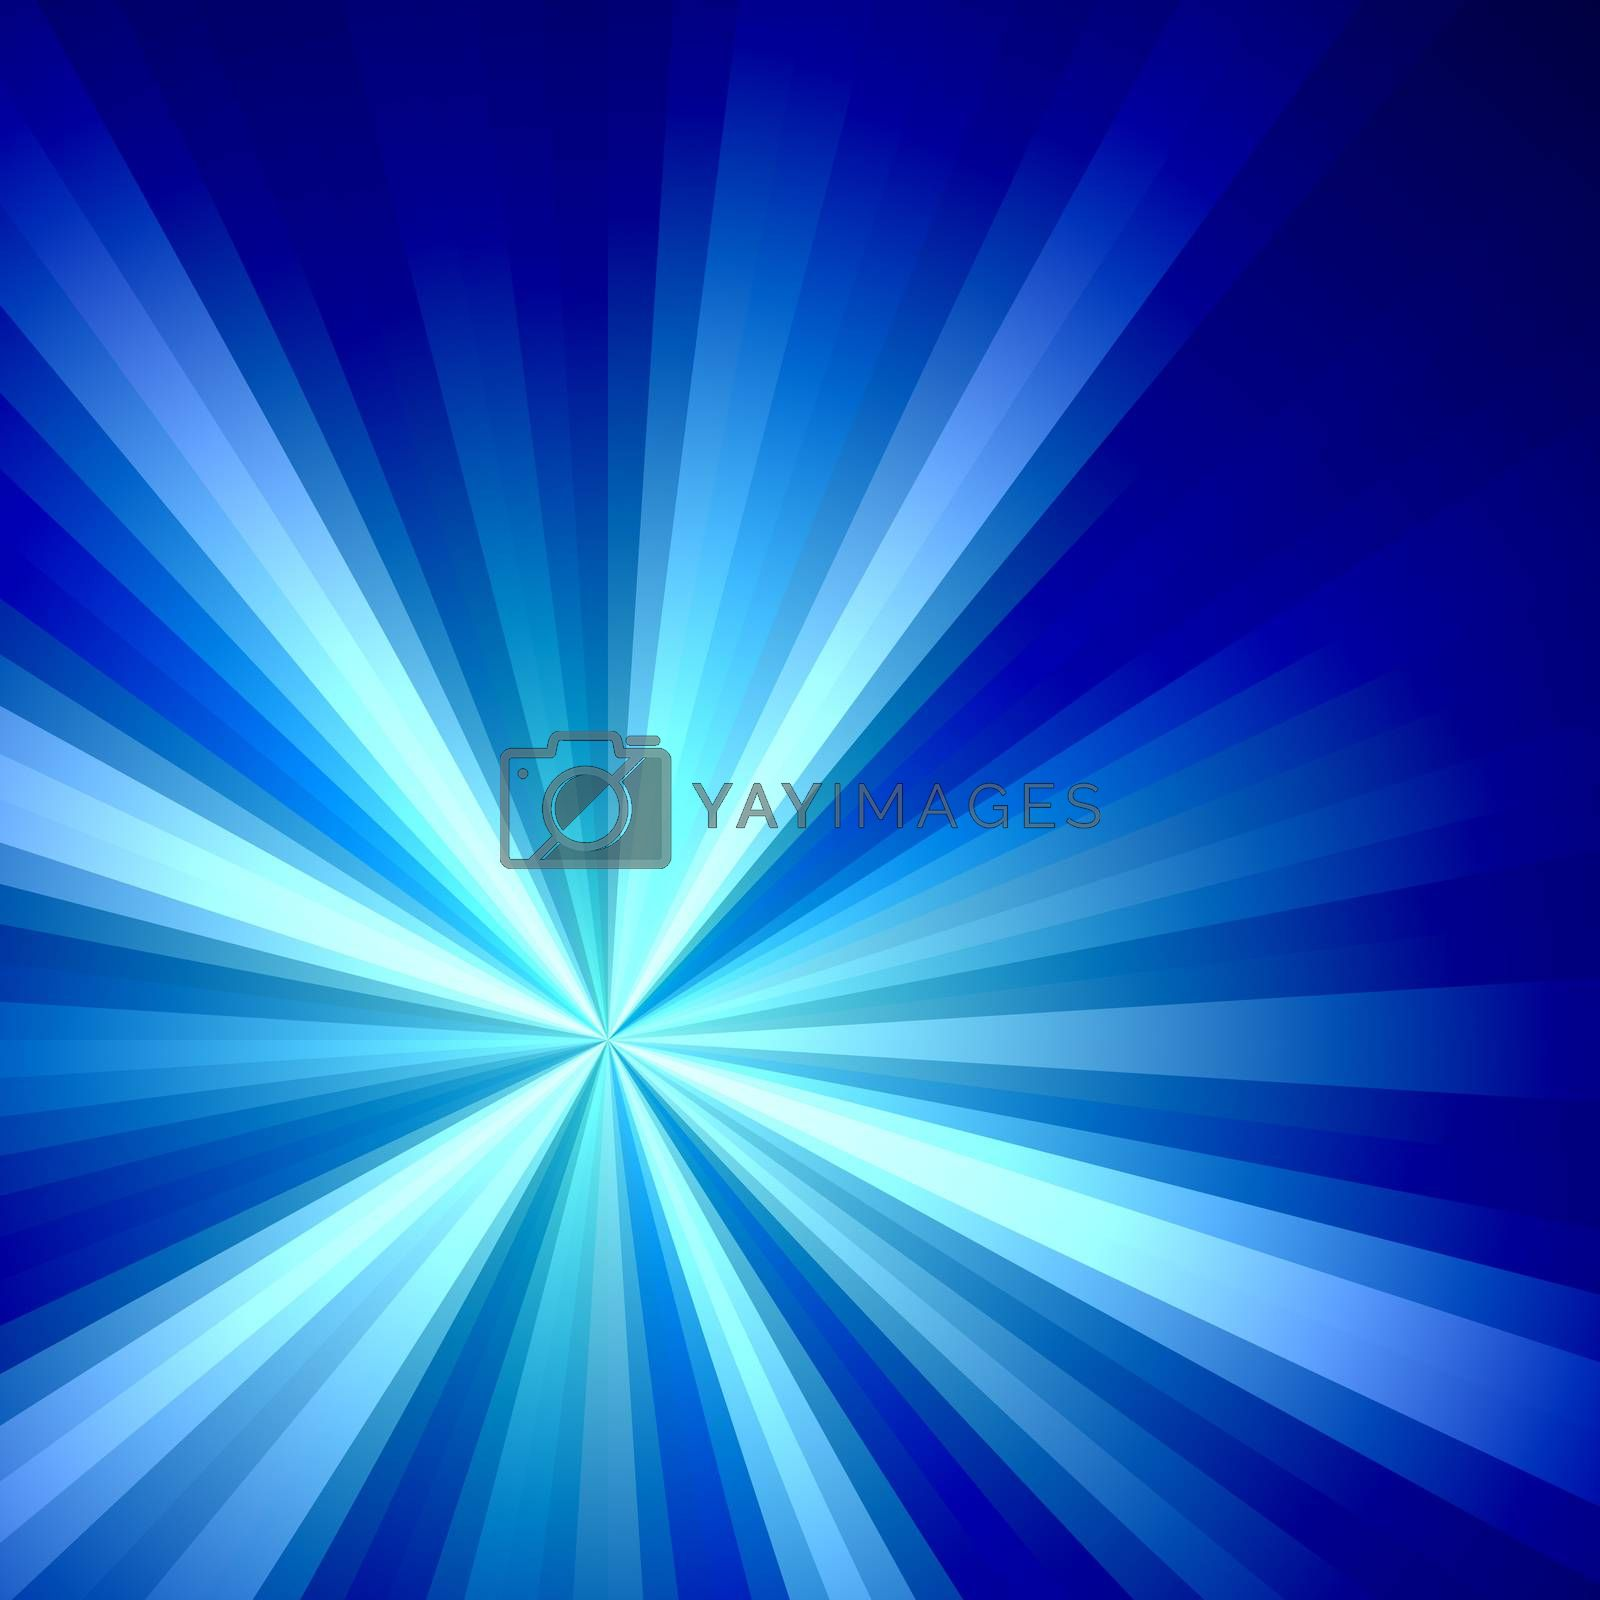 A bright fractal solar burst illustration in tons of blue and purple that works great as a design element.